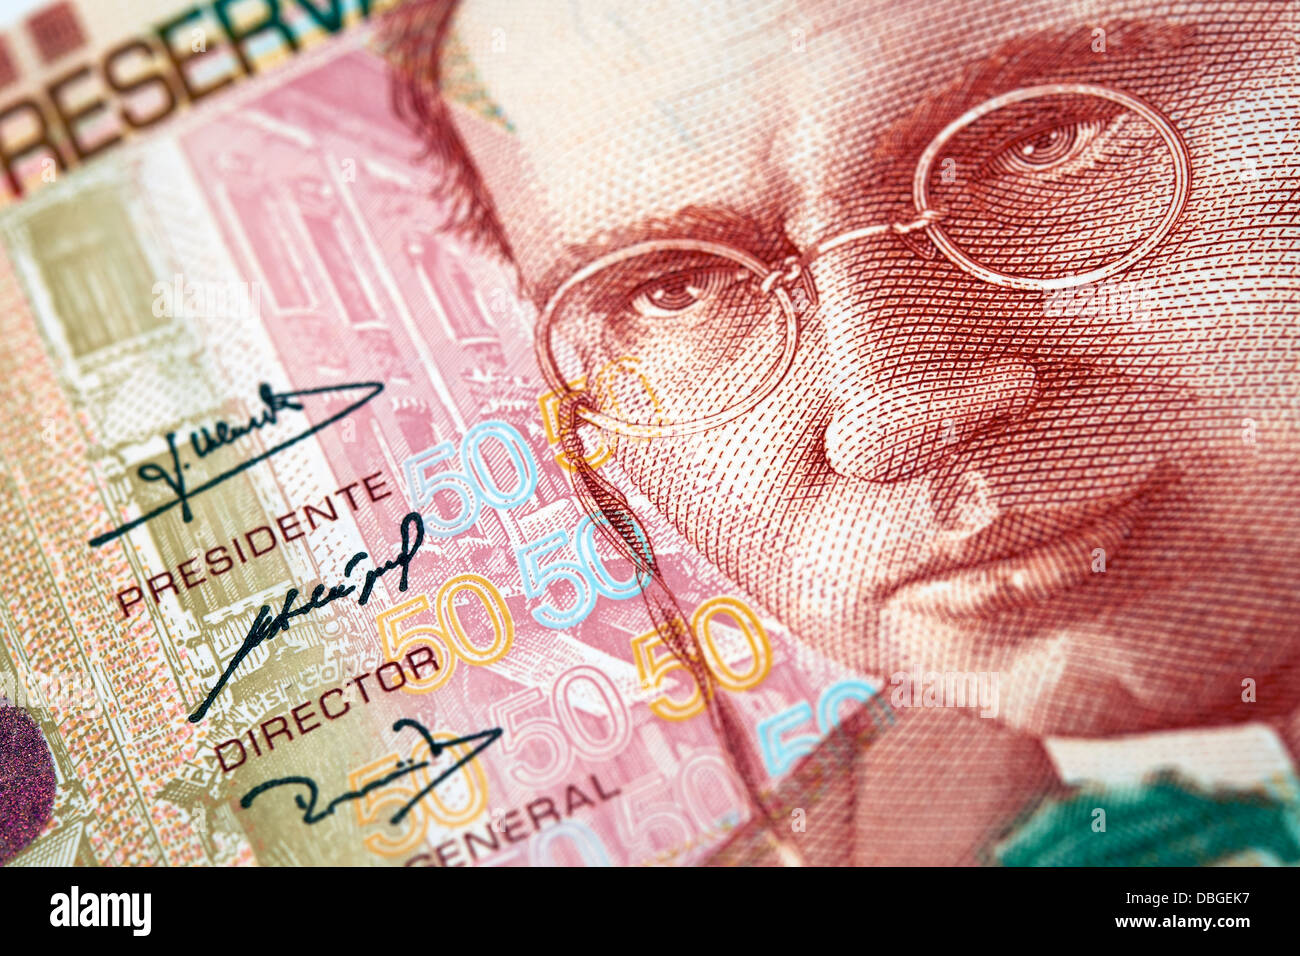 Peruvian paper notes, Nuevos Soles currency from Peru. - Stock Image